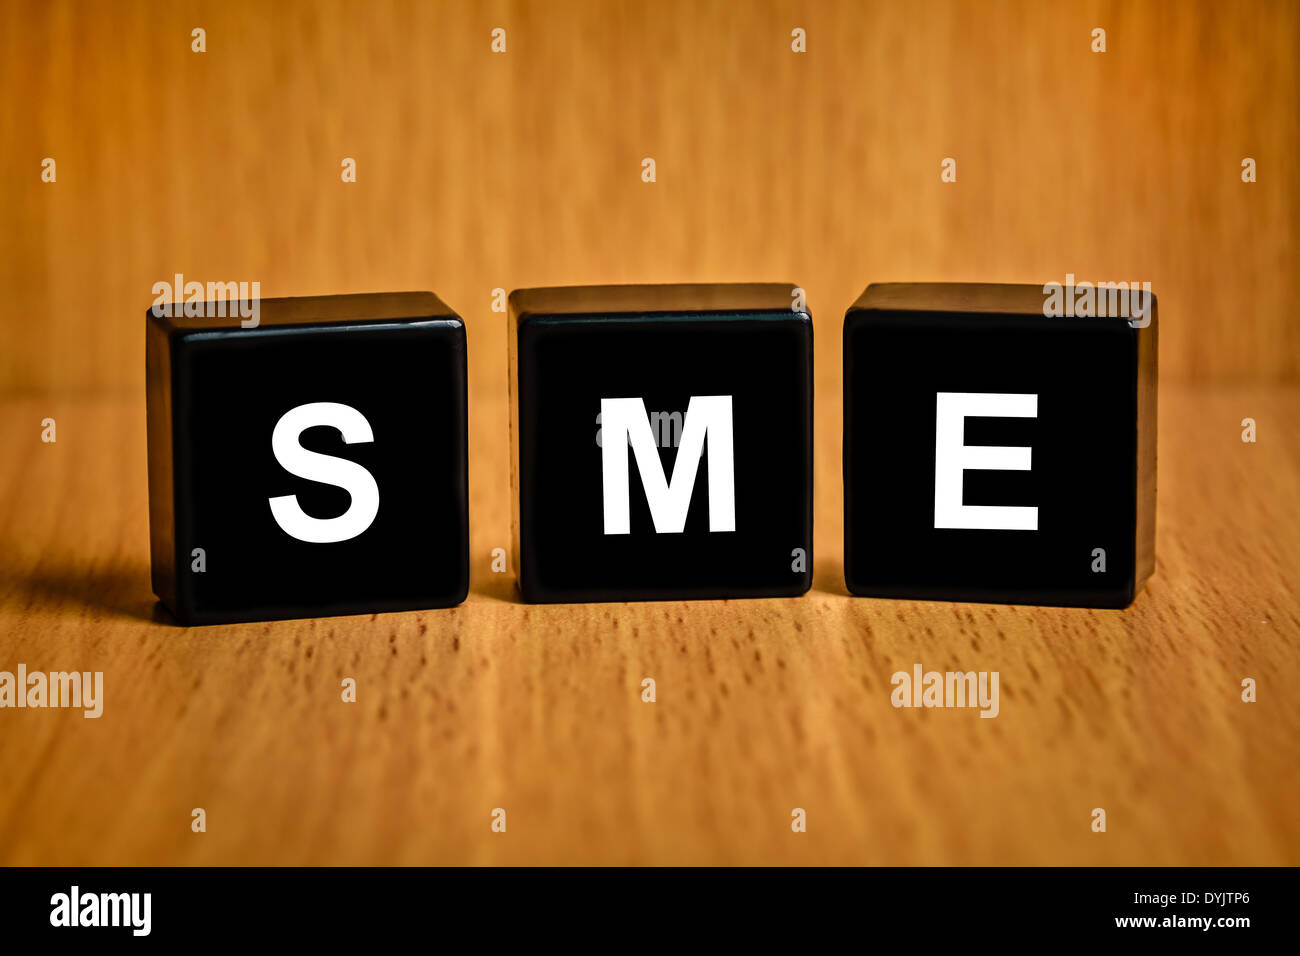 SME or Small and medium enterprises text on black block - Stock Image